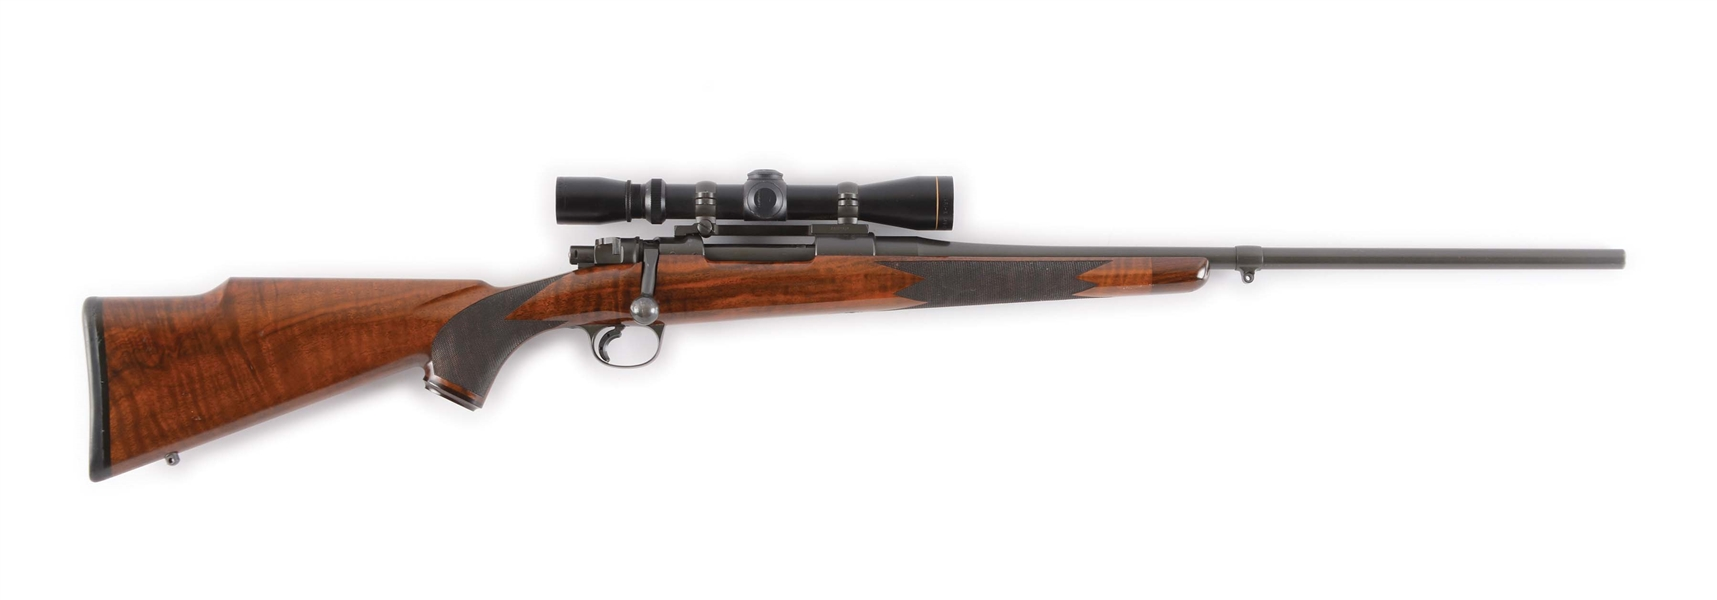 Lot Detail - (C) Custom VZ-24 Bolt Action Rifle with Scope